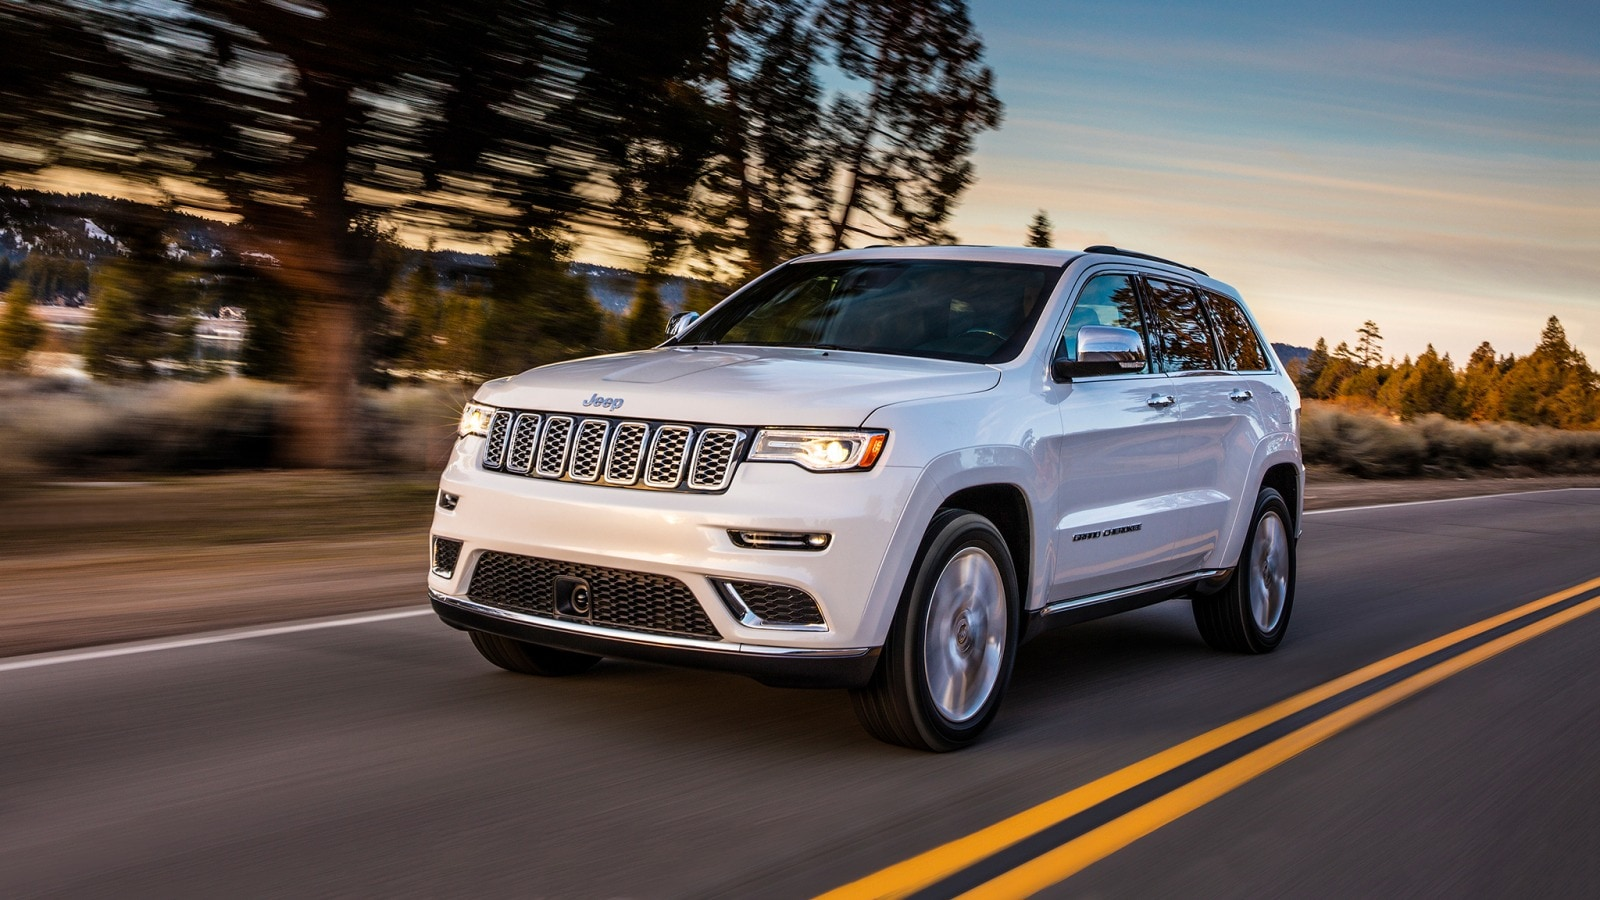 hight resolution of 2019 jeep grand cherokee srt pricing features ratings and reviews edmunds